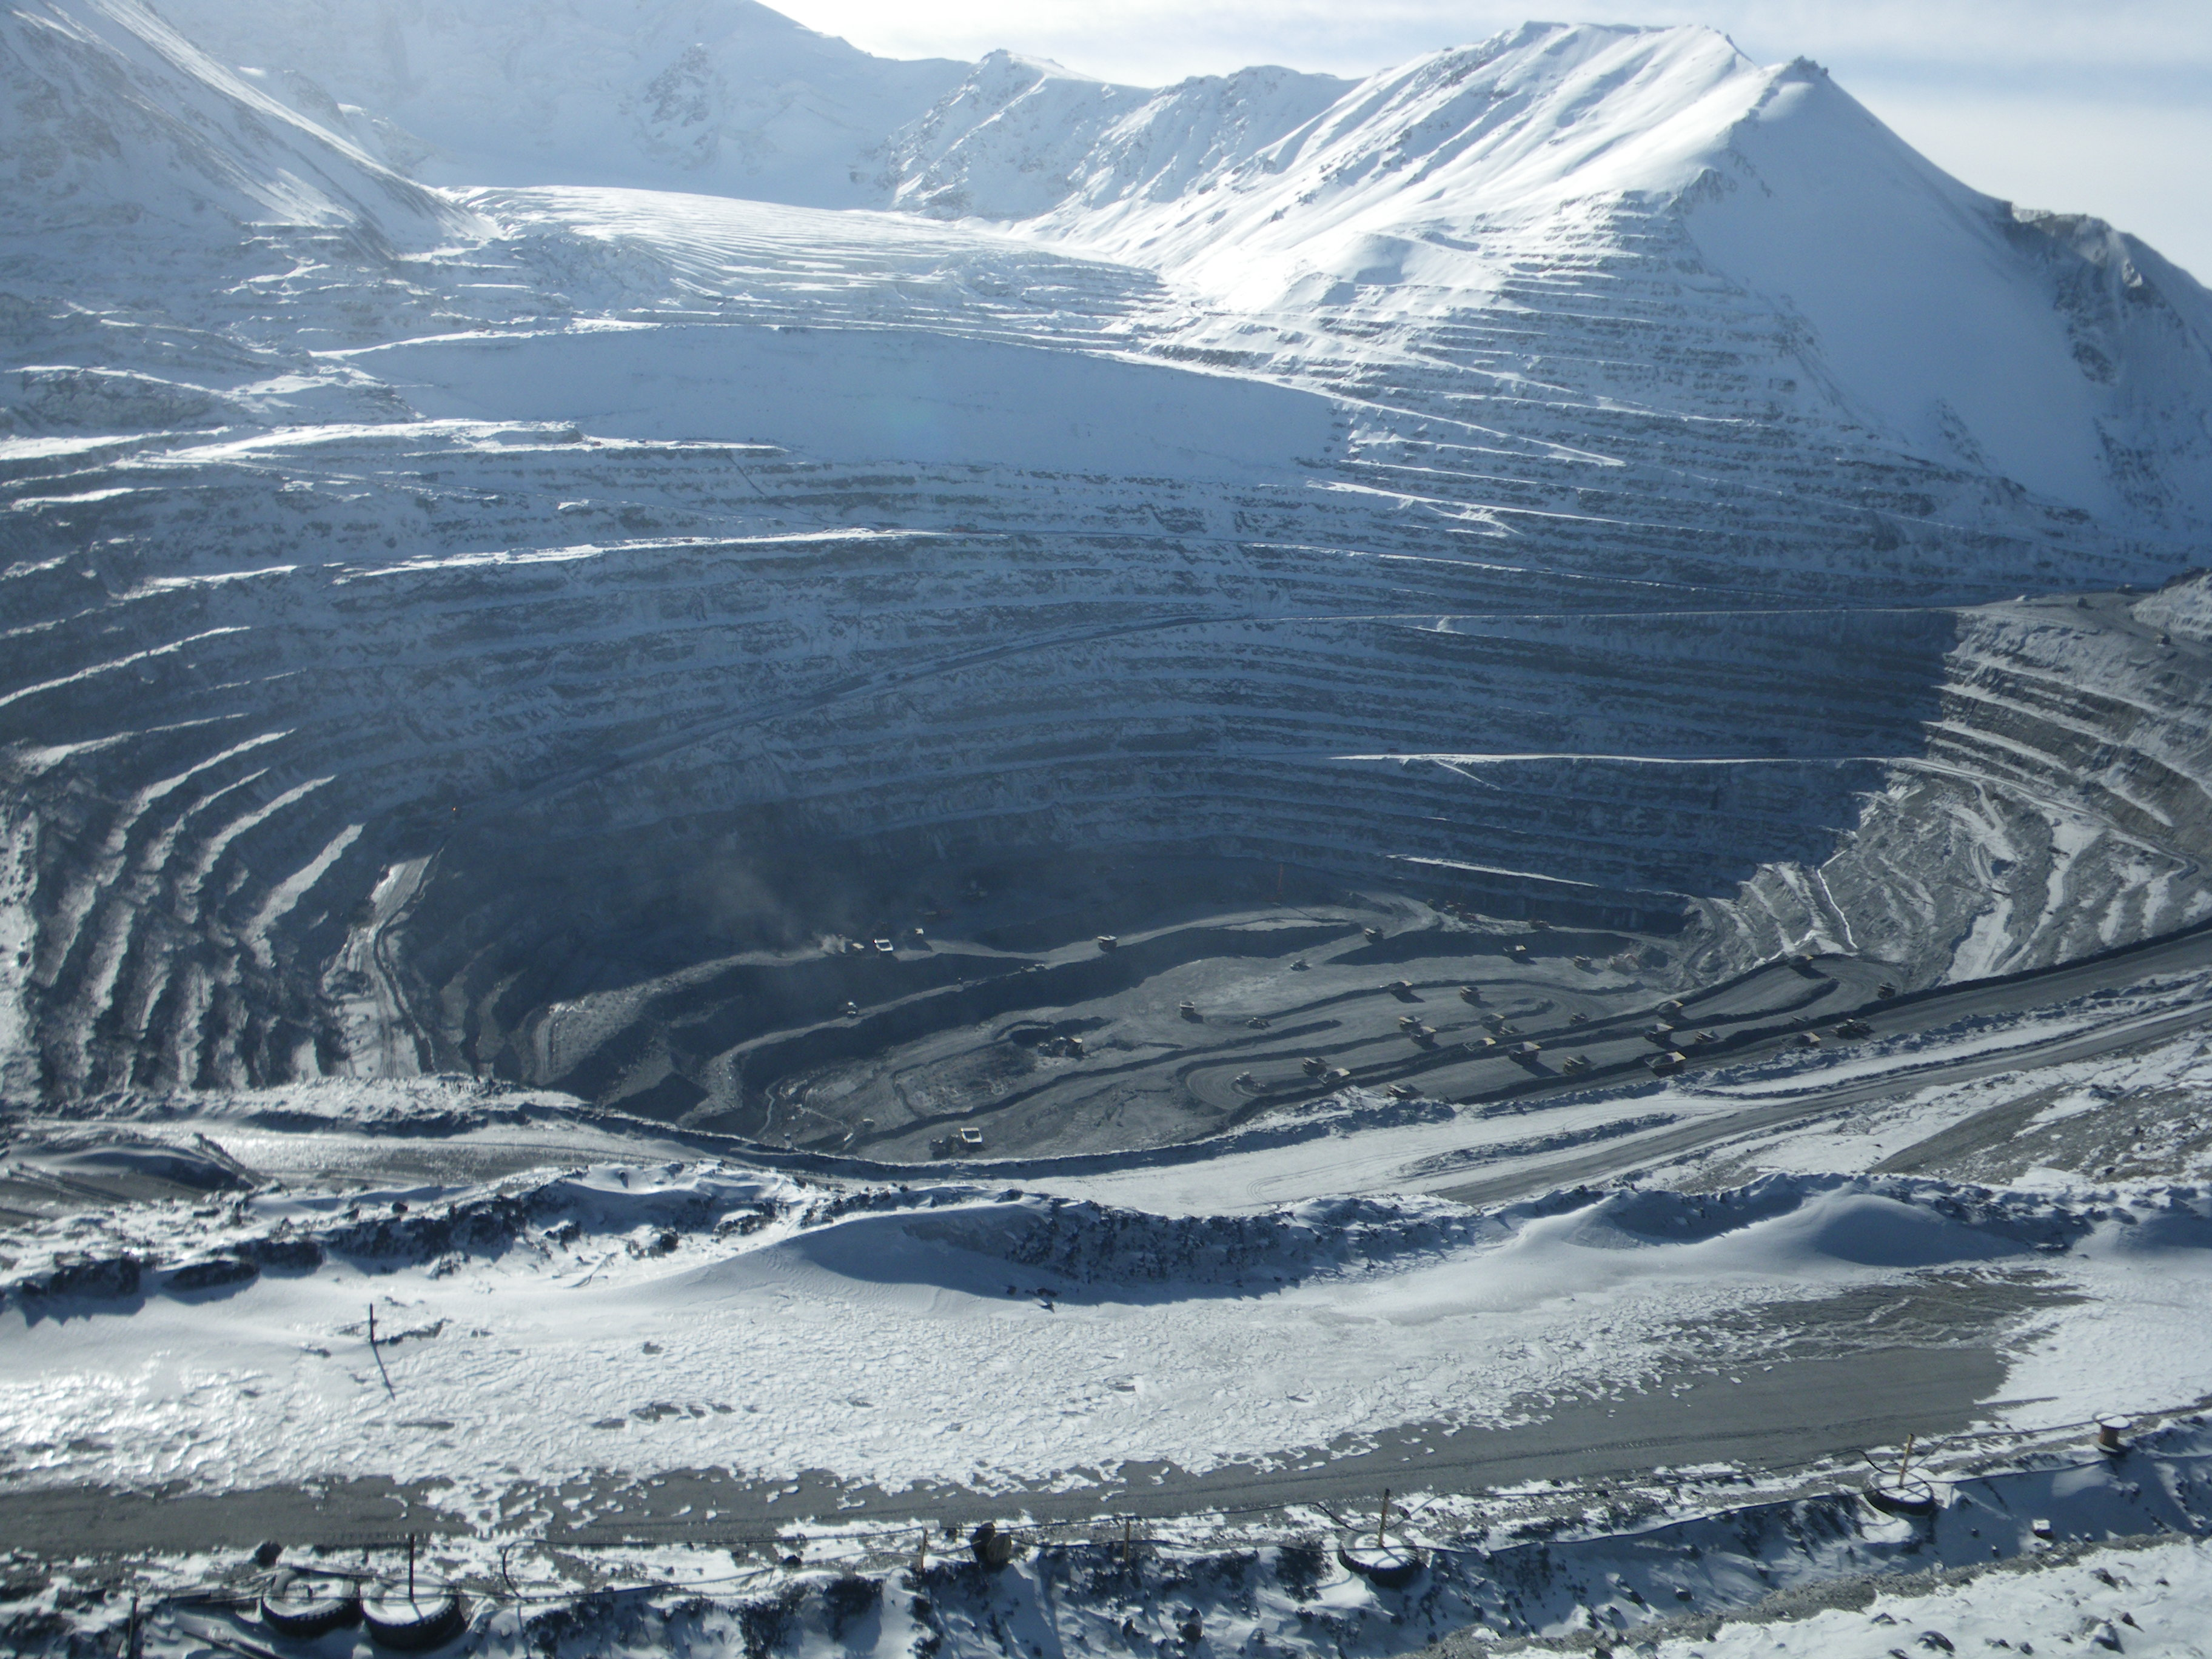 The Kumtor mine in Kyrgyzstan sits atop two glaciers